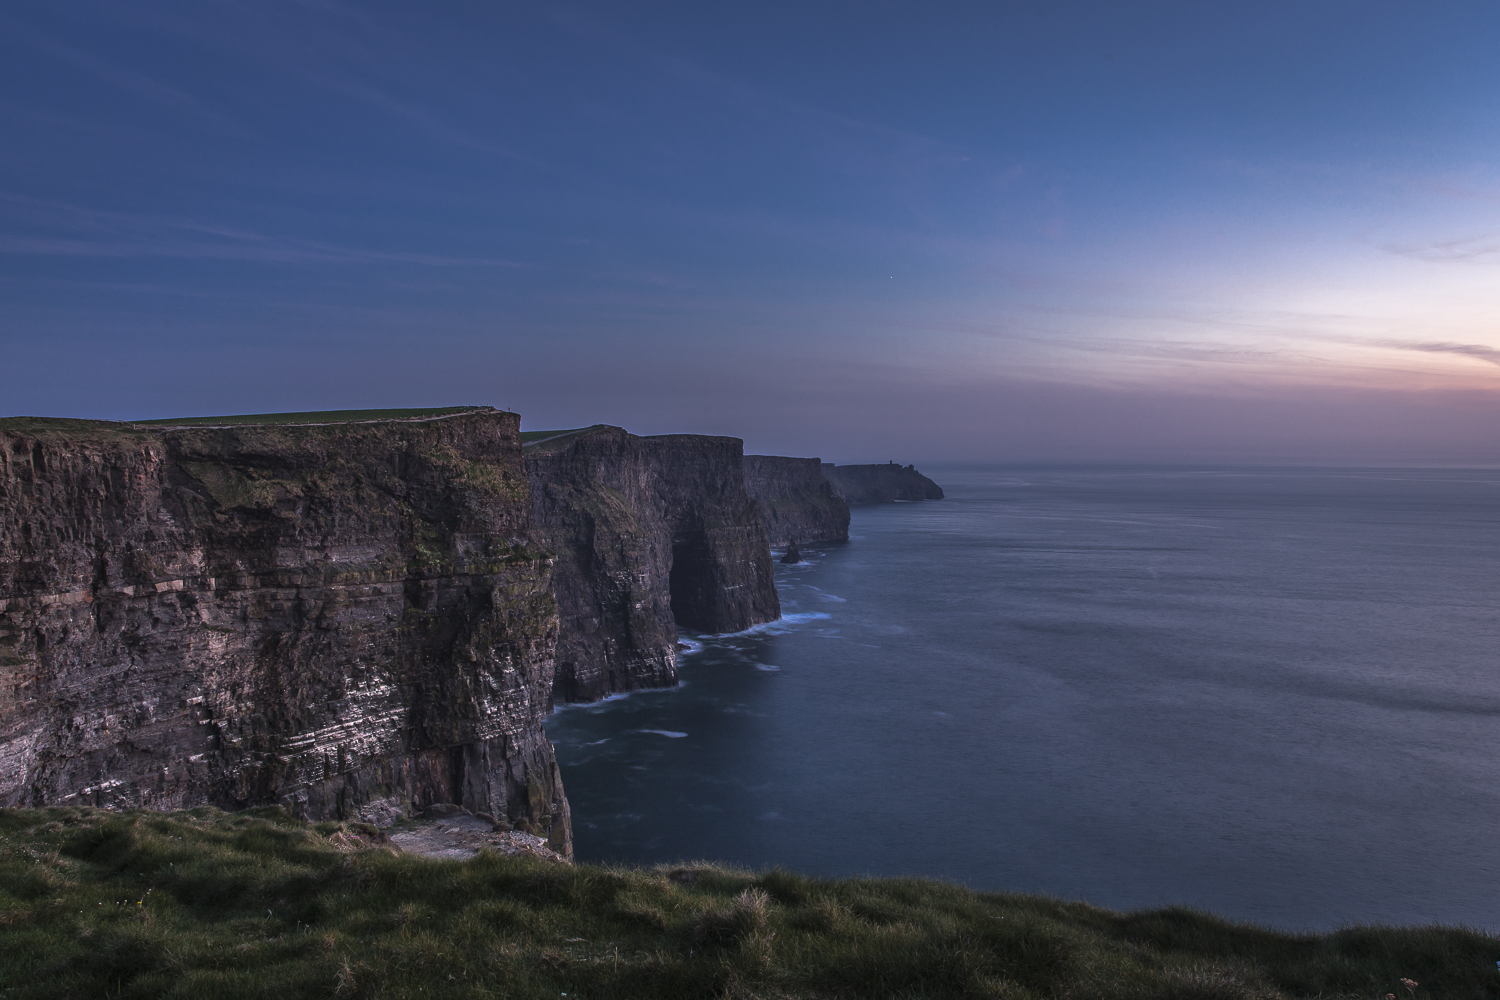 Irland Reiseblog: Cliffs of Moher at night © PhotoTravelNomads.com